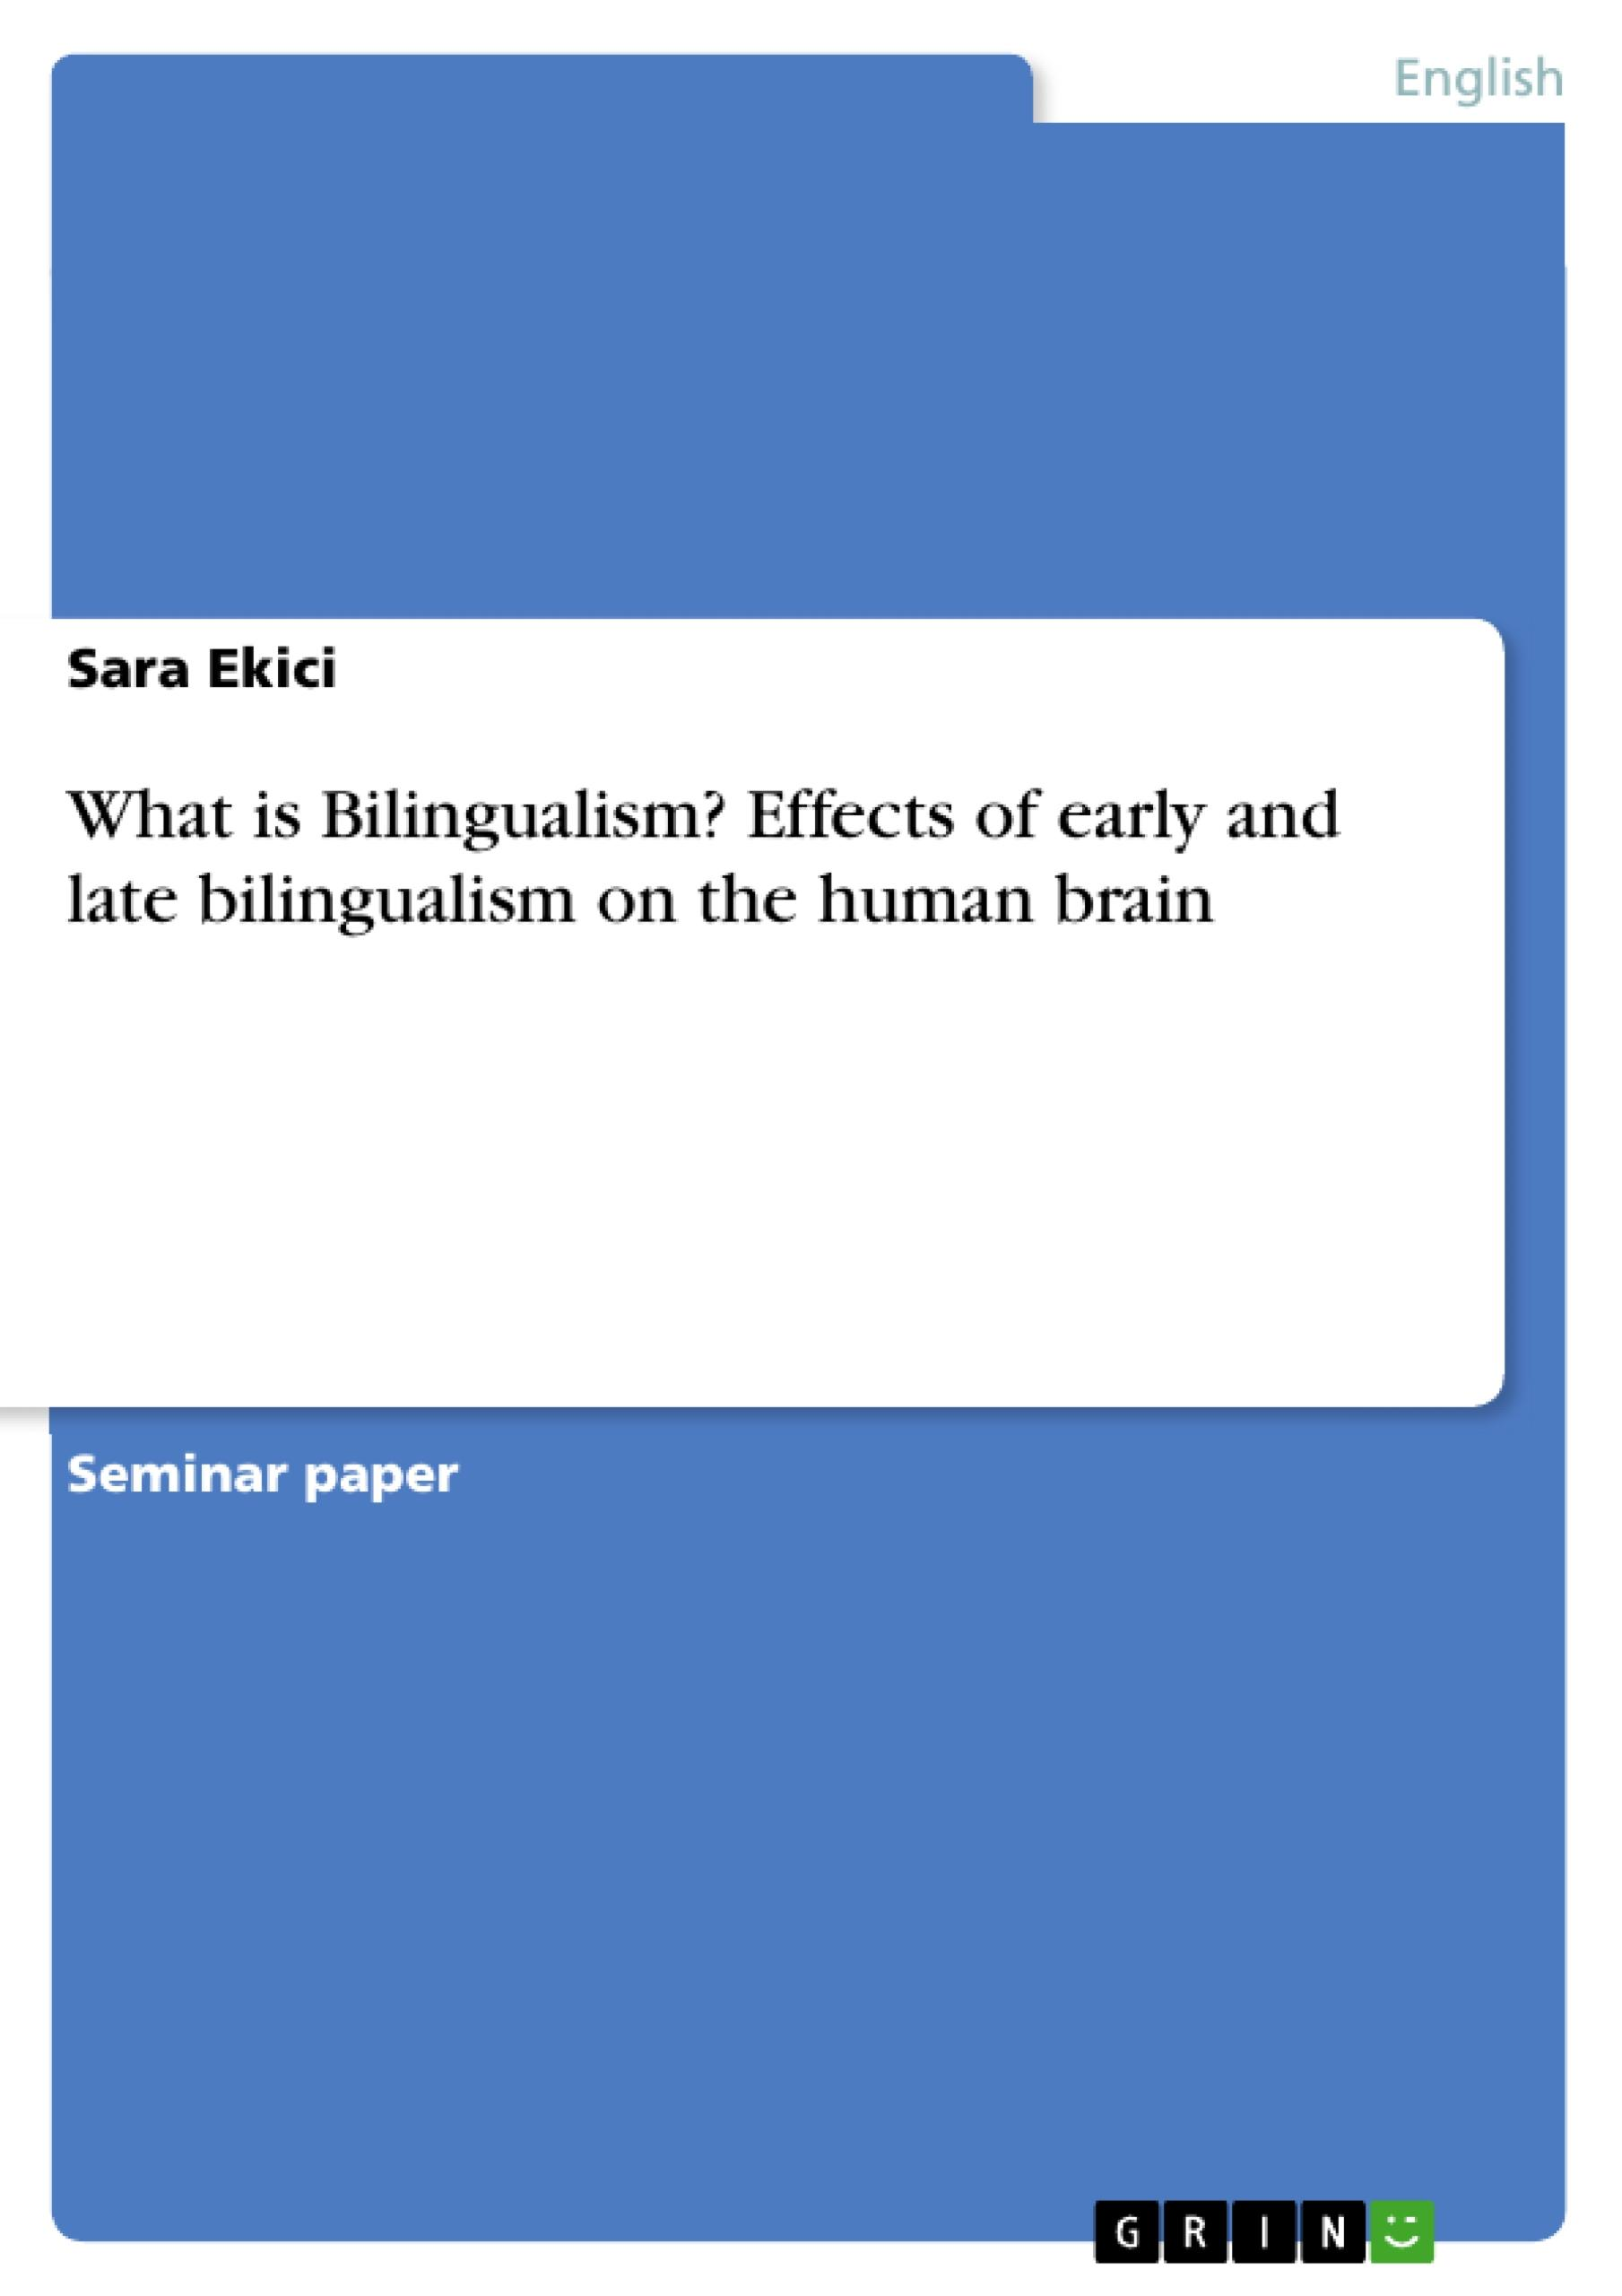 What is Bilingualism? Effects of early and late bilingualism on the human brain  Sara Ekici  Taschenbuch  Englisch  2016 - Ekici, Sara